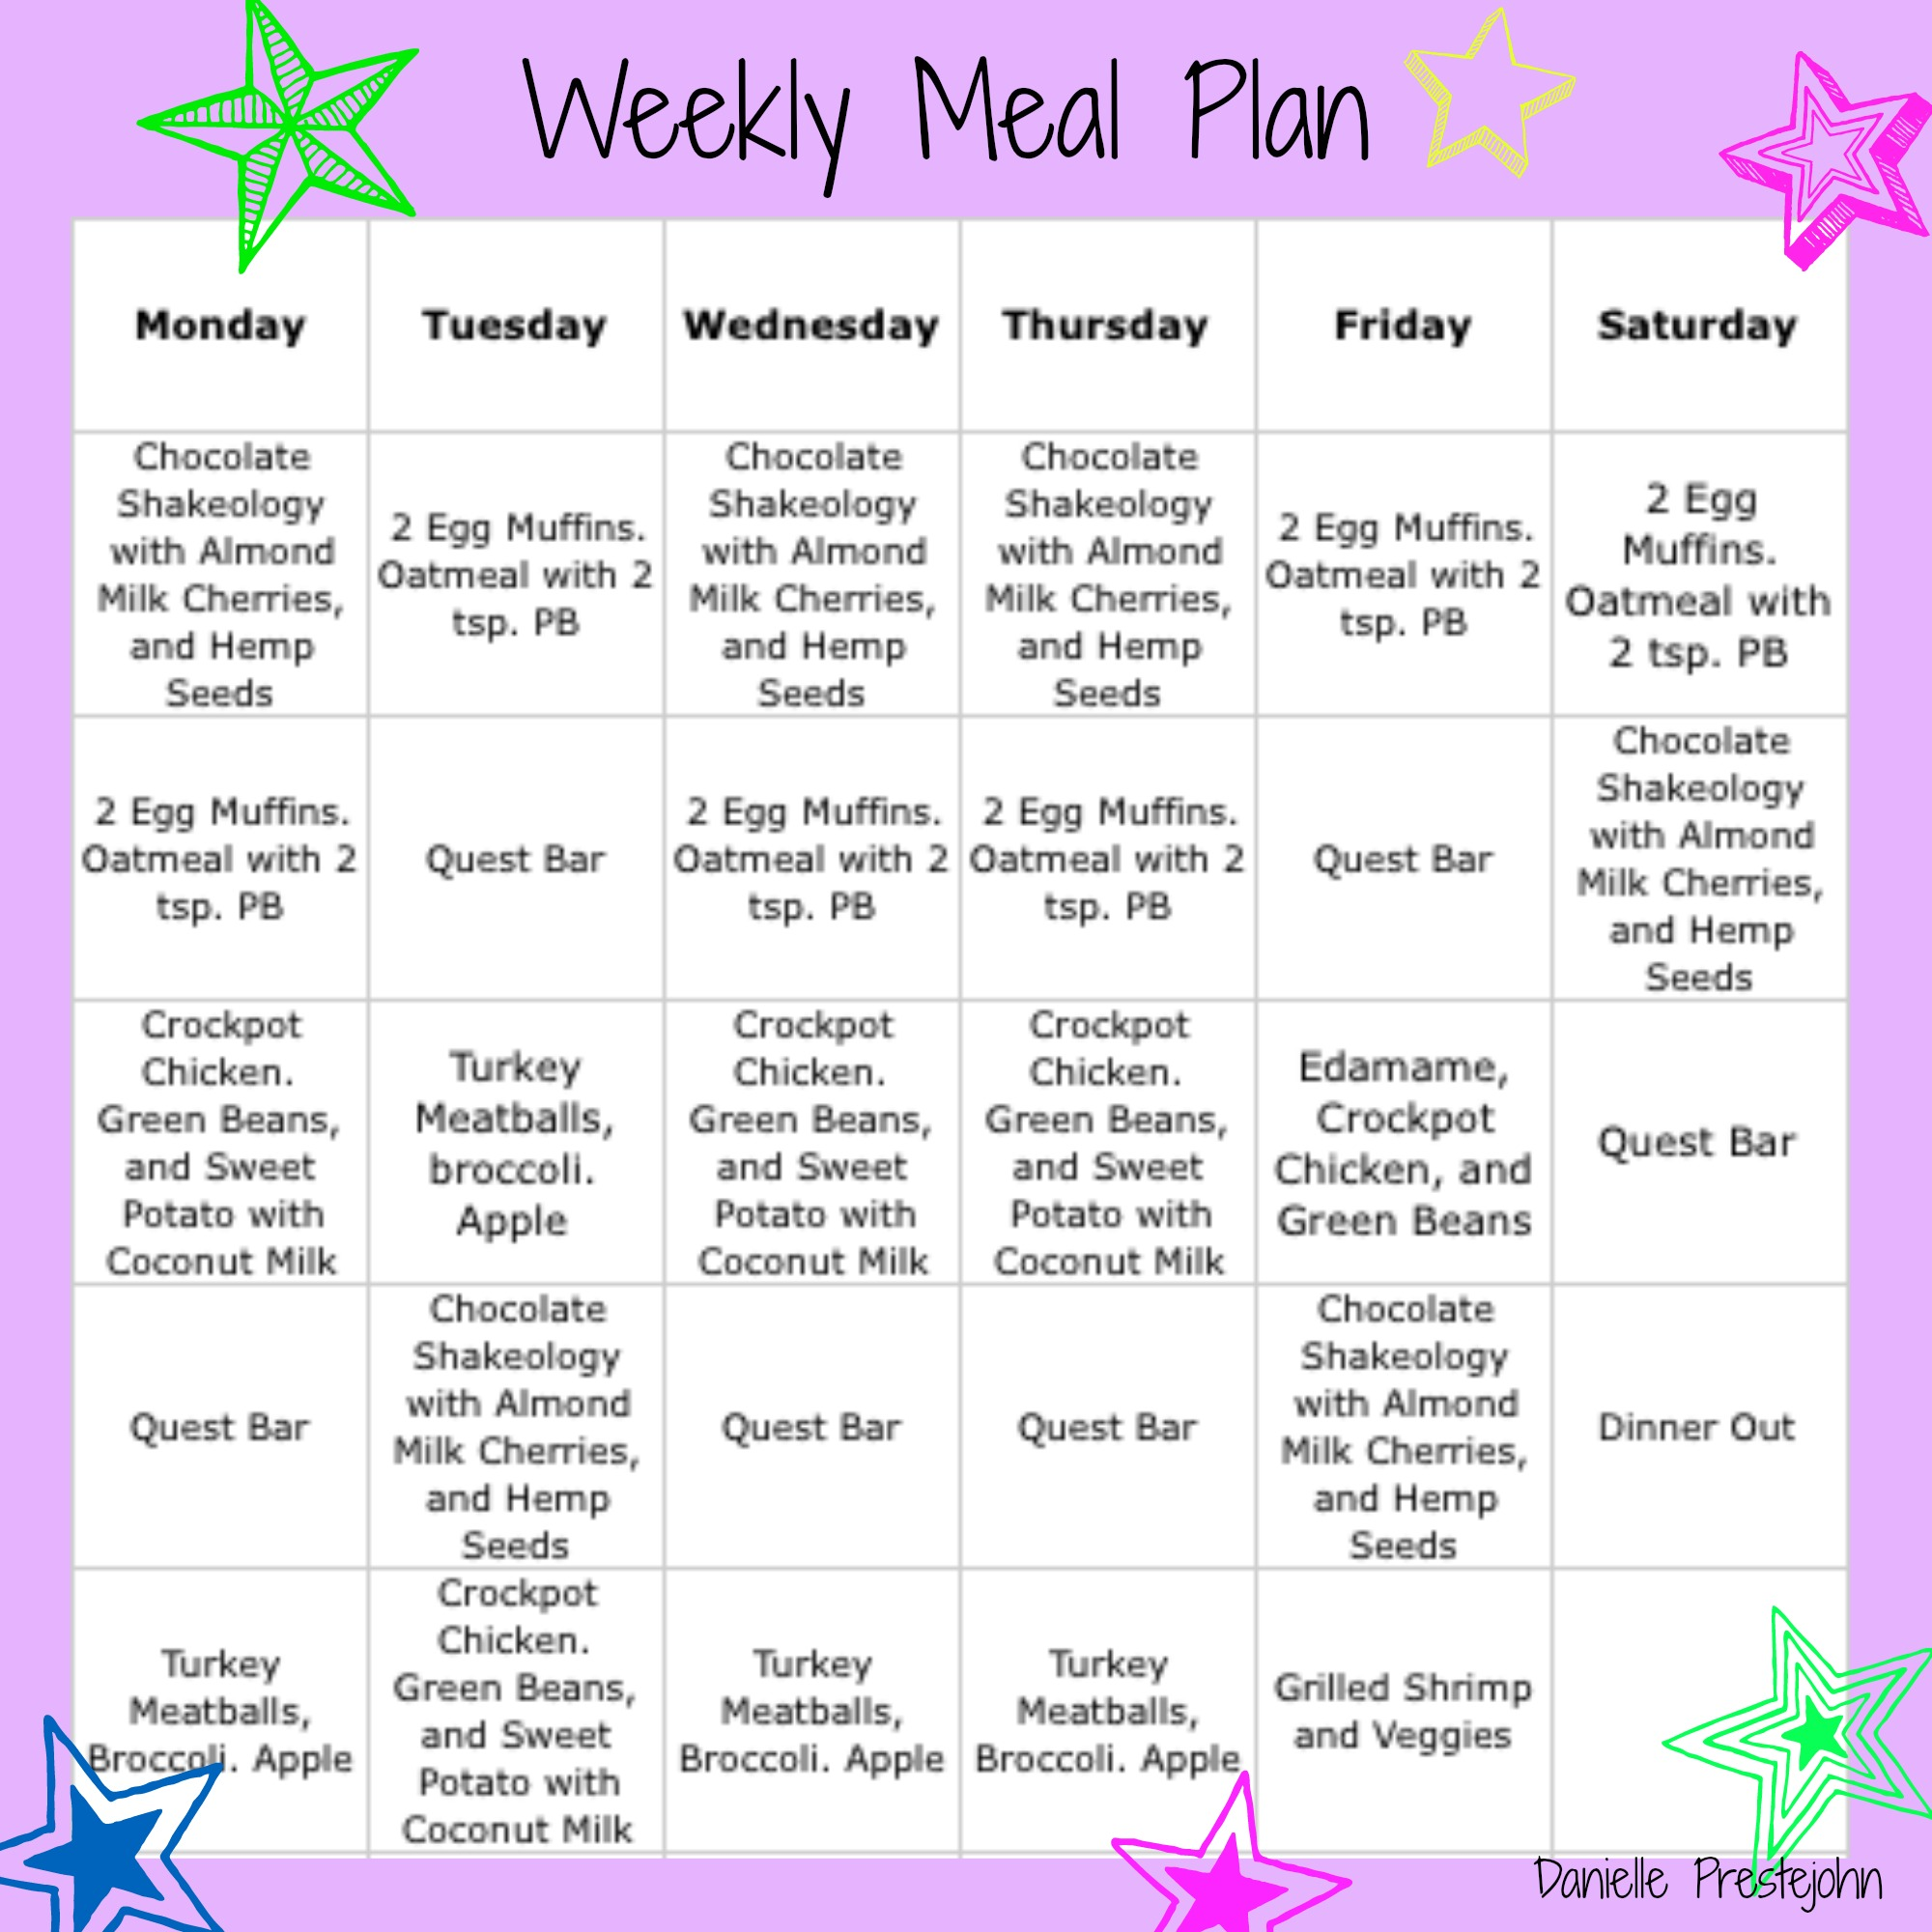 Weeklymealplan228